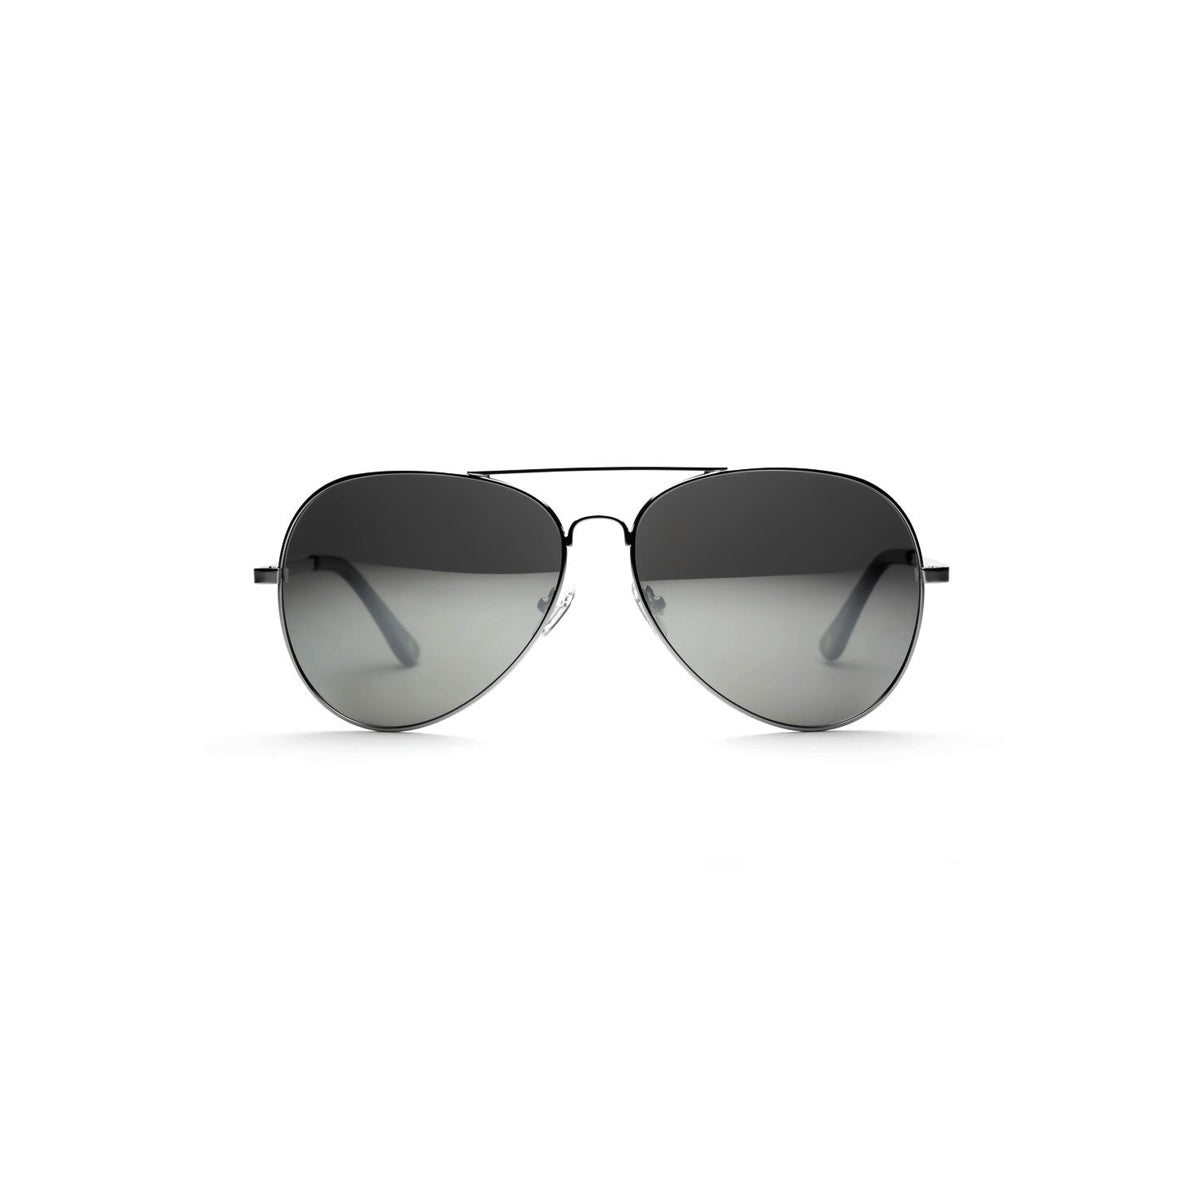 shopify-Vintage Style Aviator Mirrored Sunglasses - Silver, Blue, Black, Pink or Bronze-11